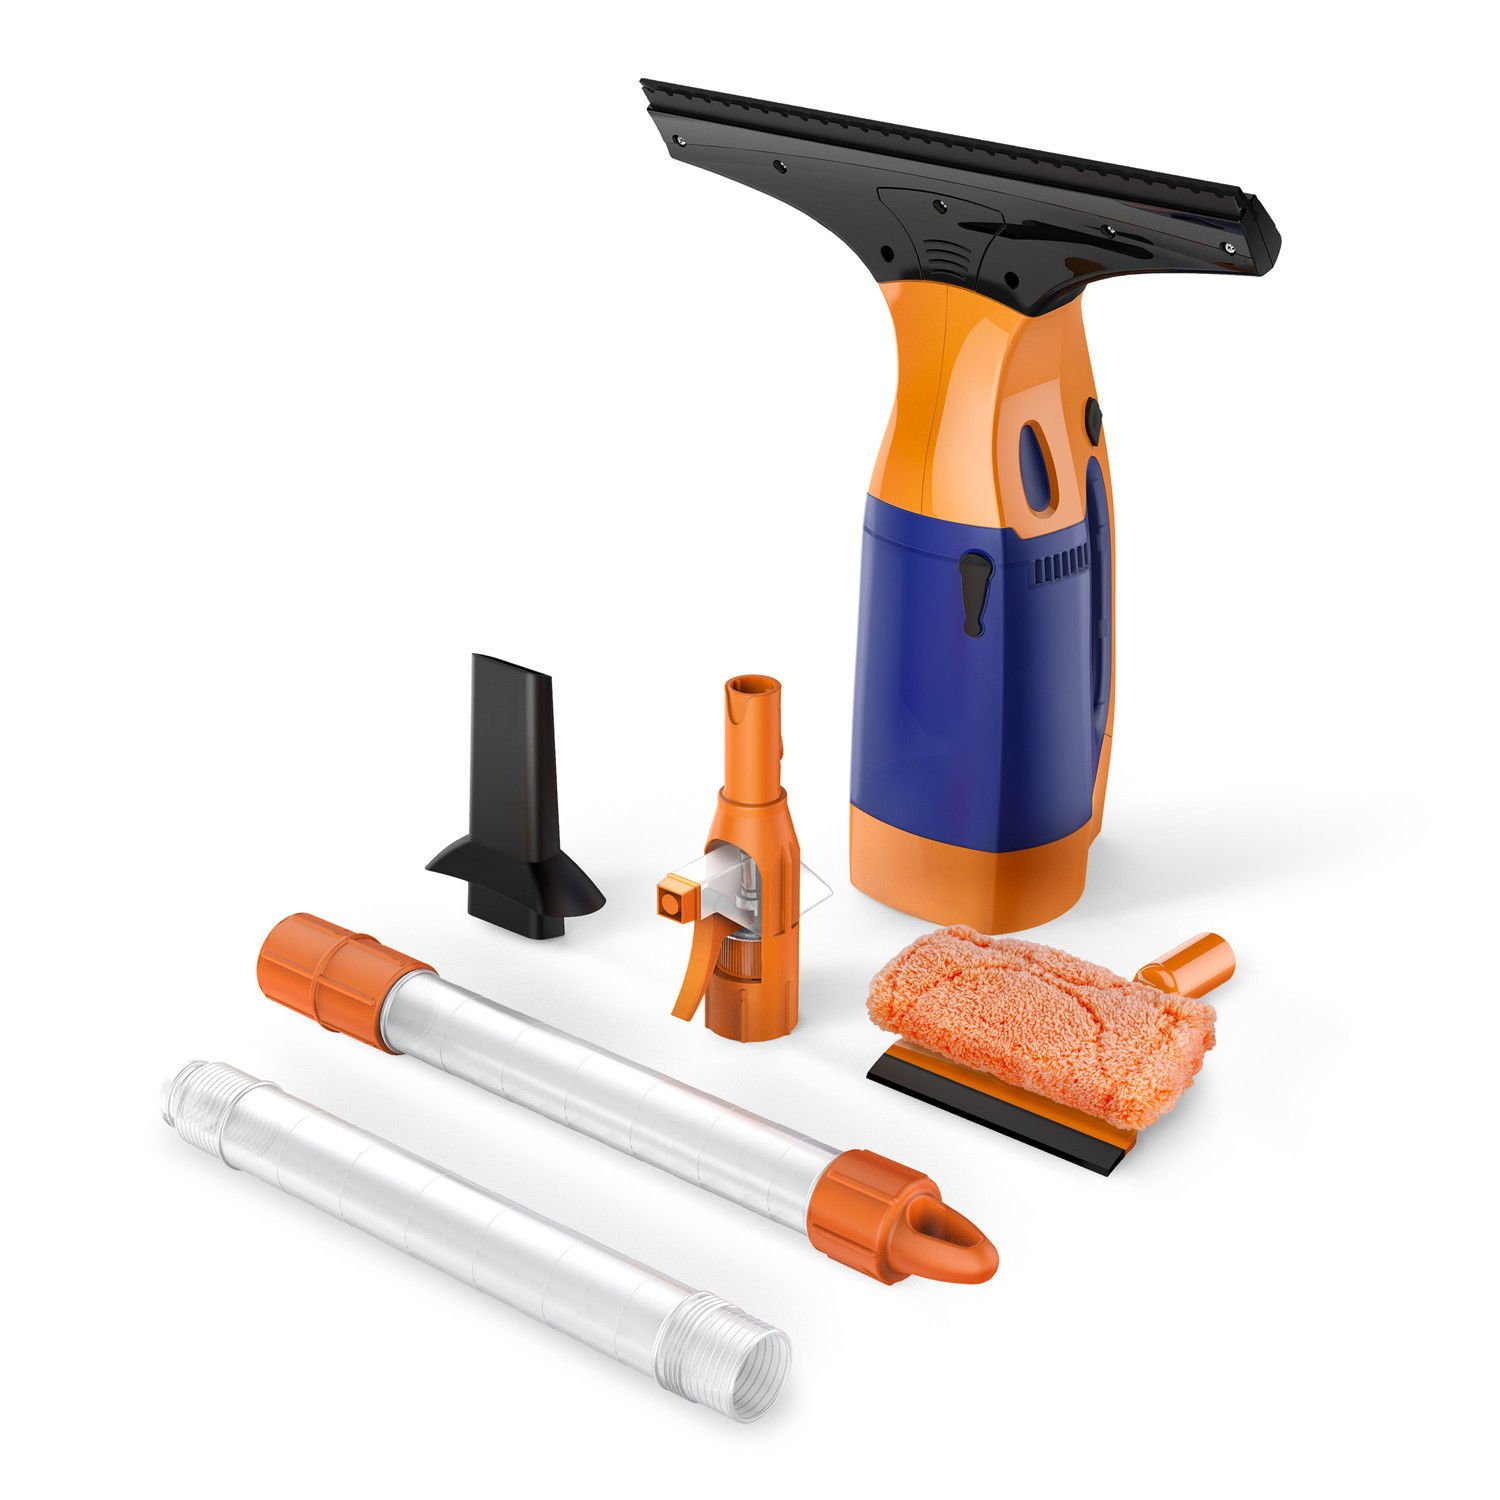 BESTEK Telescopic Window Vacuum Cleaner, Cordless Window Cleaning Rechargeable Tool Kit, with 2 Extension Telescopic Tube, Spray Bottle